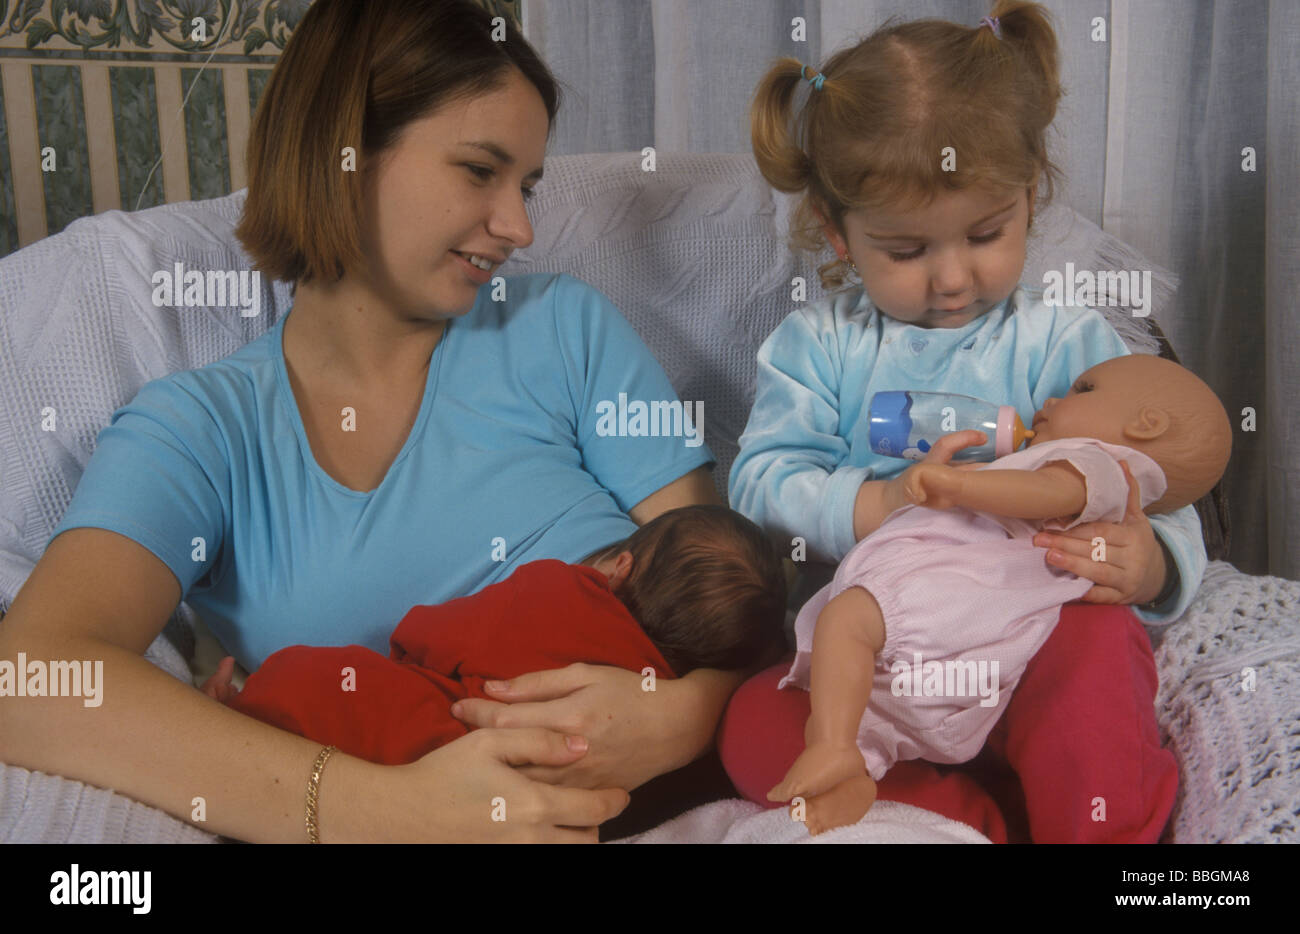 mother breastfeeding her baby while her toddler bottle feeds her doll - Stock Image